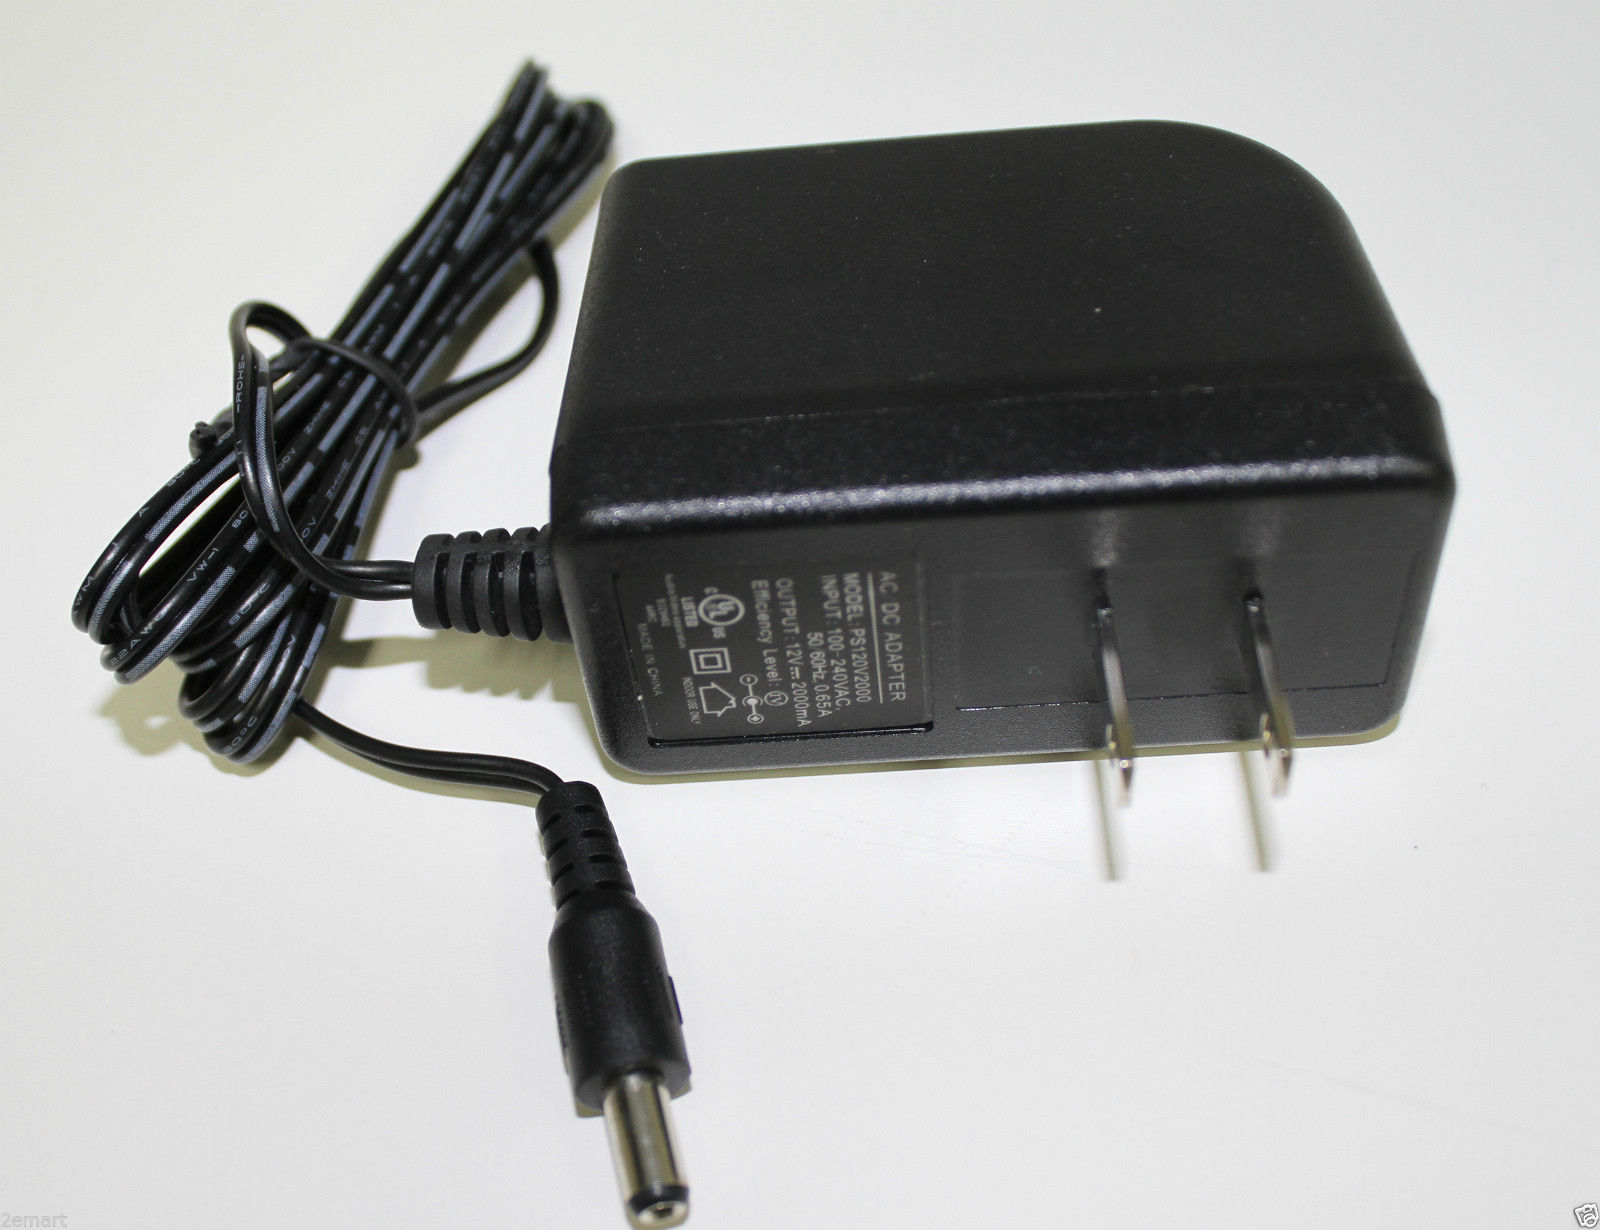 12V DC 2A (2000mA) Security Camera Power Supply Adapter